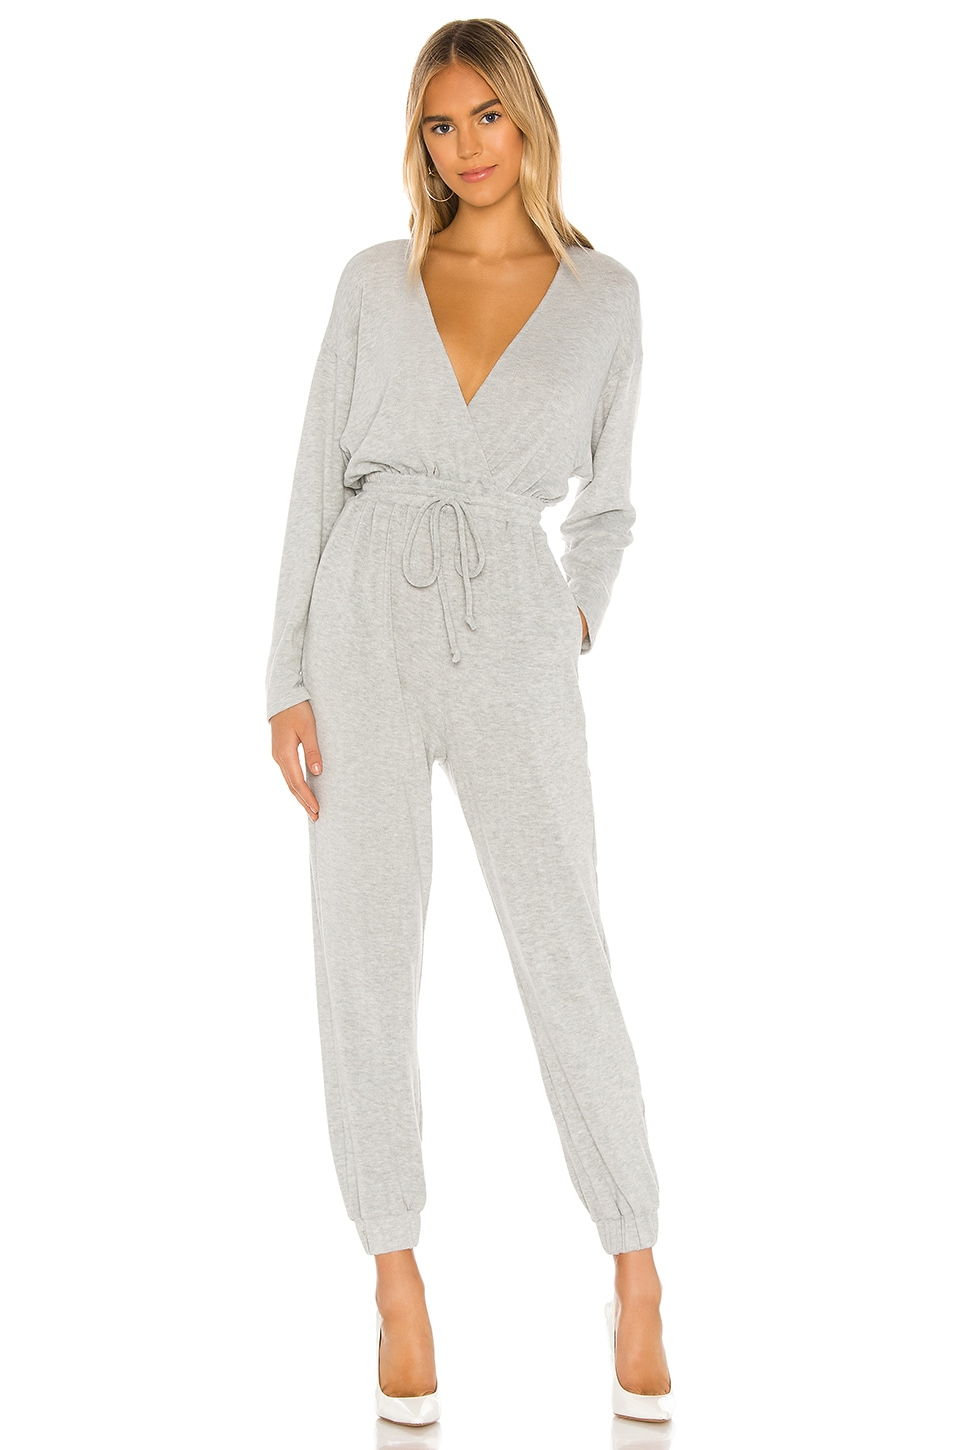 MAJORELLE Willie Jumpsuit in Heather Grey